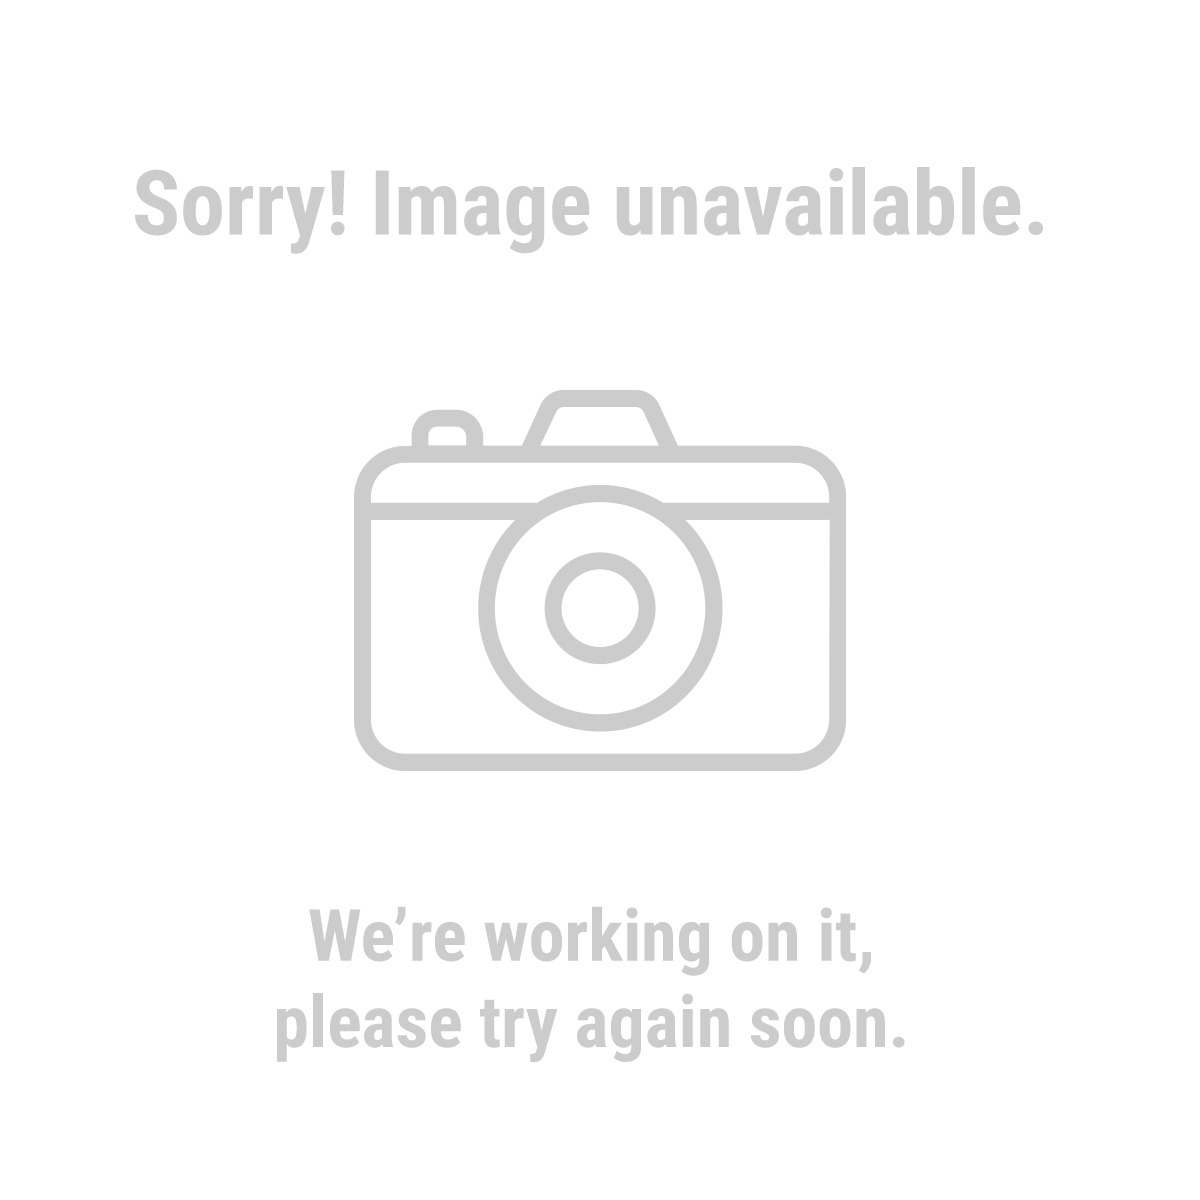 Image Result For Hand Truck Harbor Freight